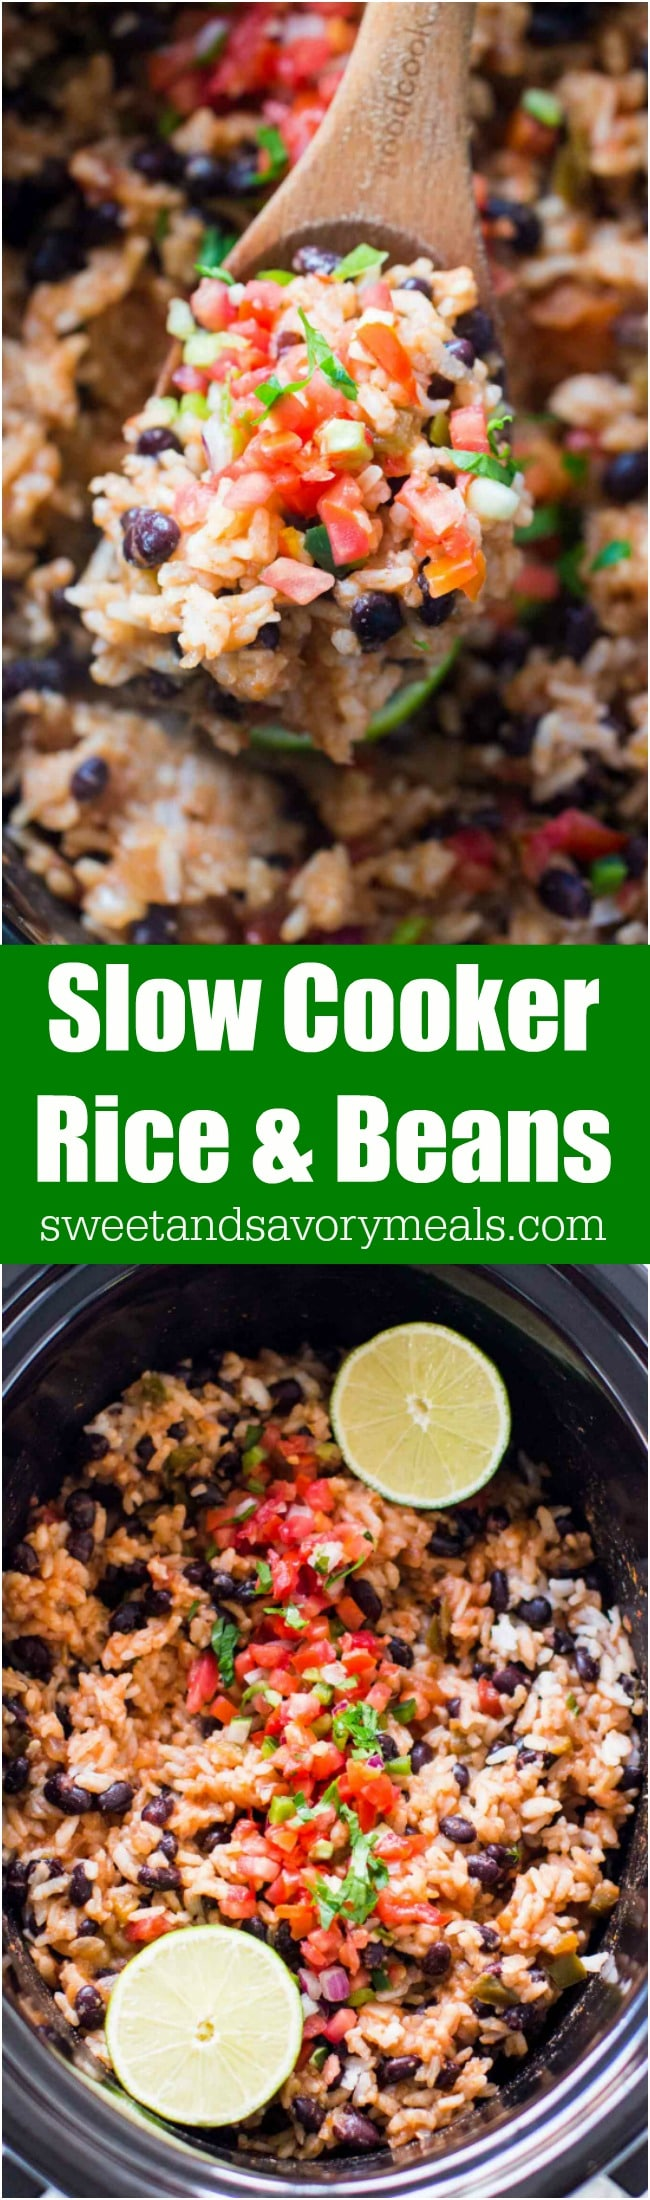 Slow Cooker Rice and Beans is the perfect side dish or vegetarian meal you can make in the slow cooker with just a few ingredients.